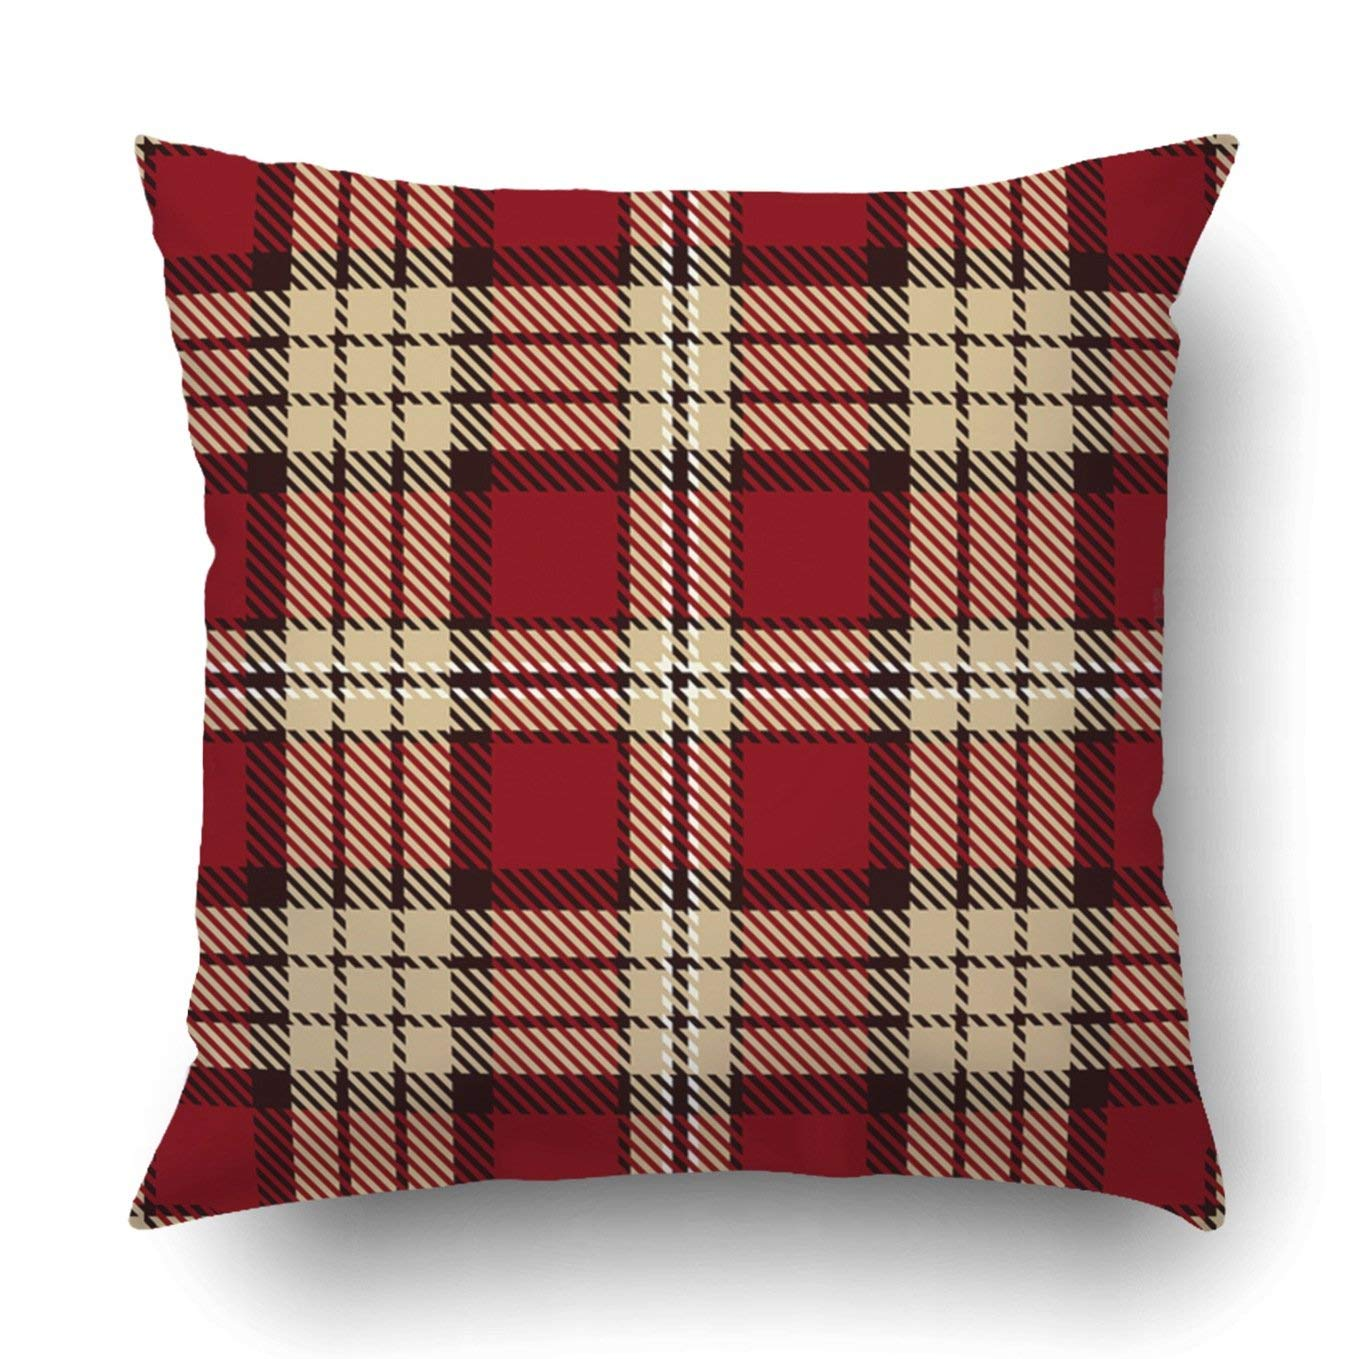 WOPOP Tartan Red Black Camel Beige and White Plaid Tartan Trendy Tiles Pillowcase Throw Pillow Cover Case 16x16 inches